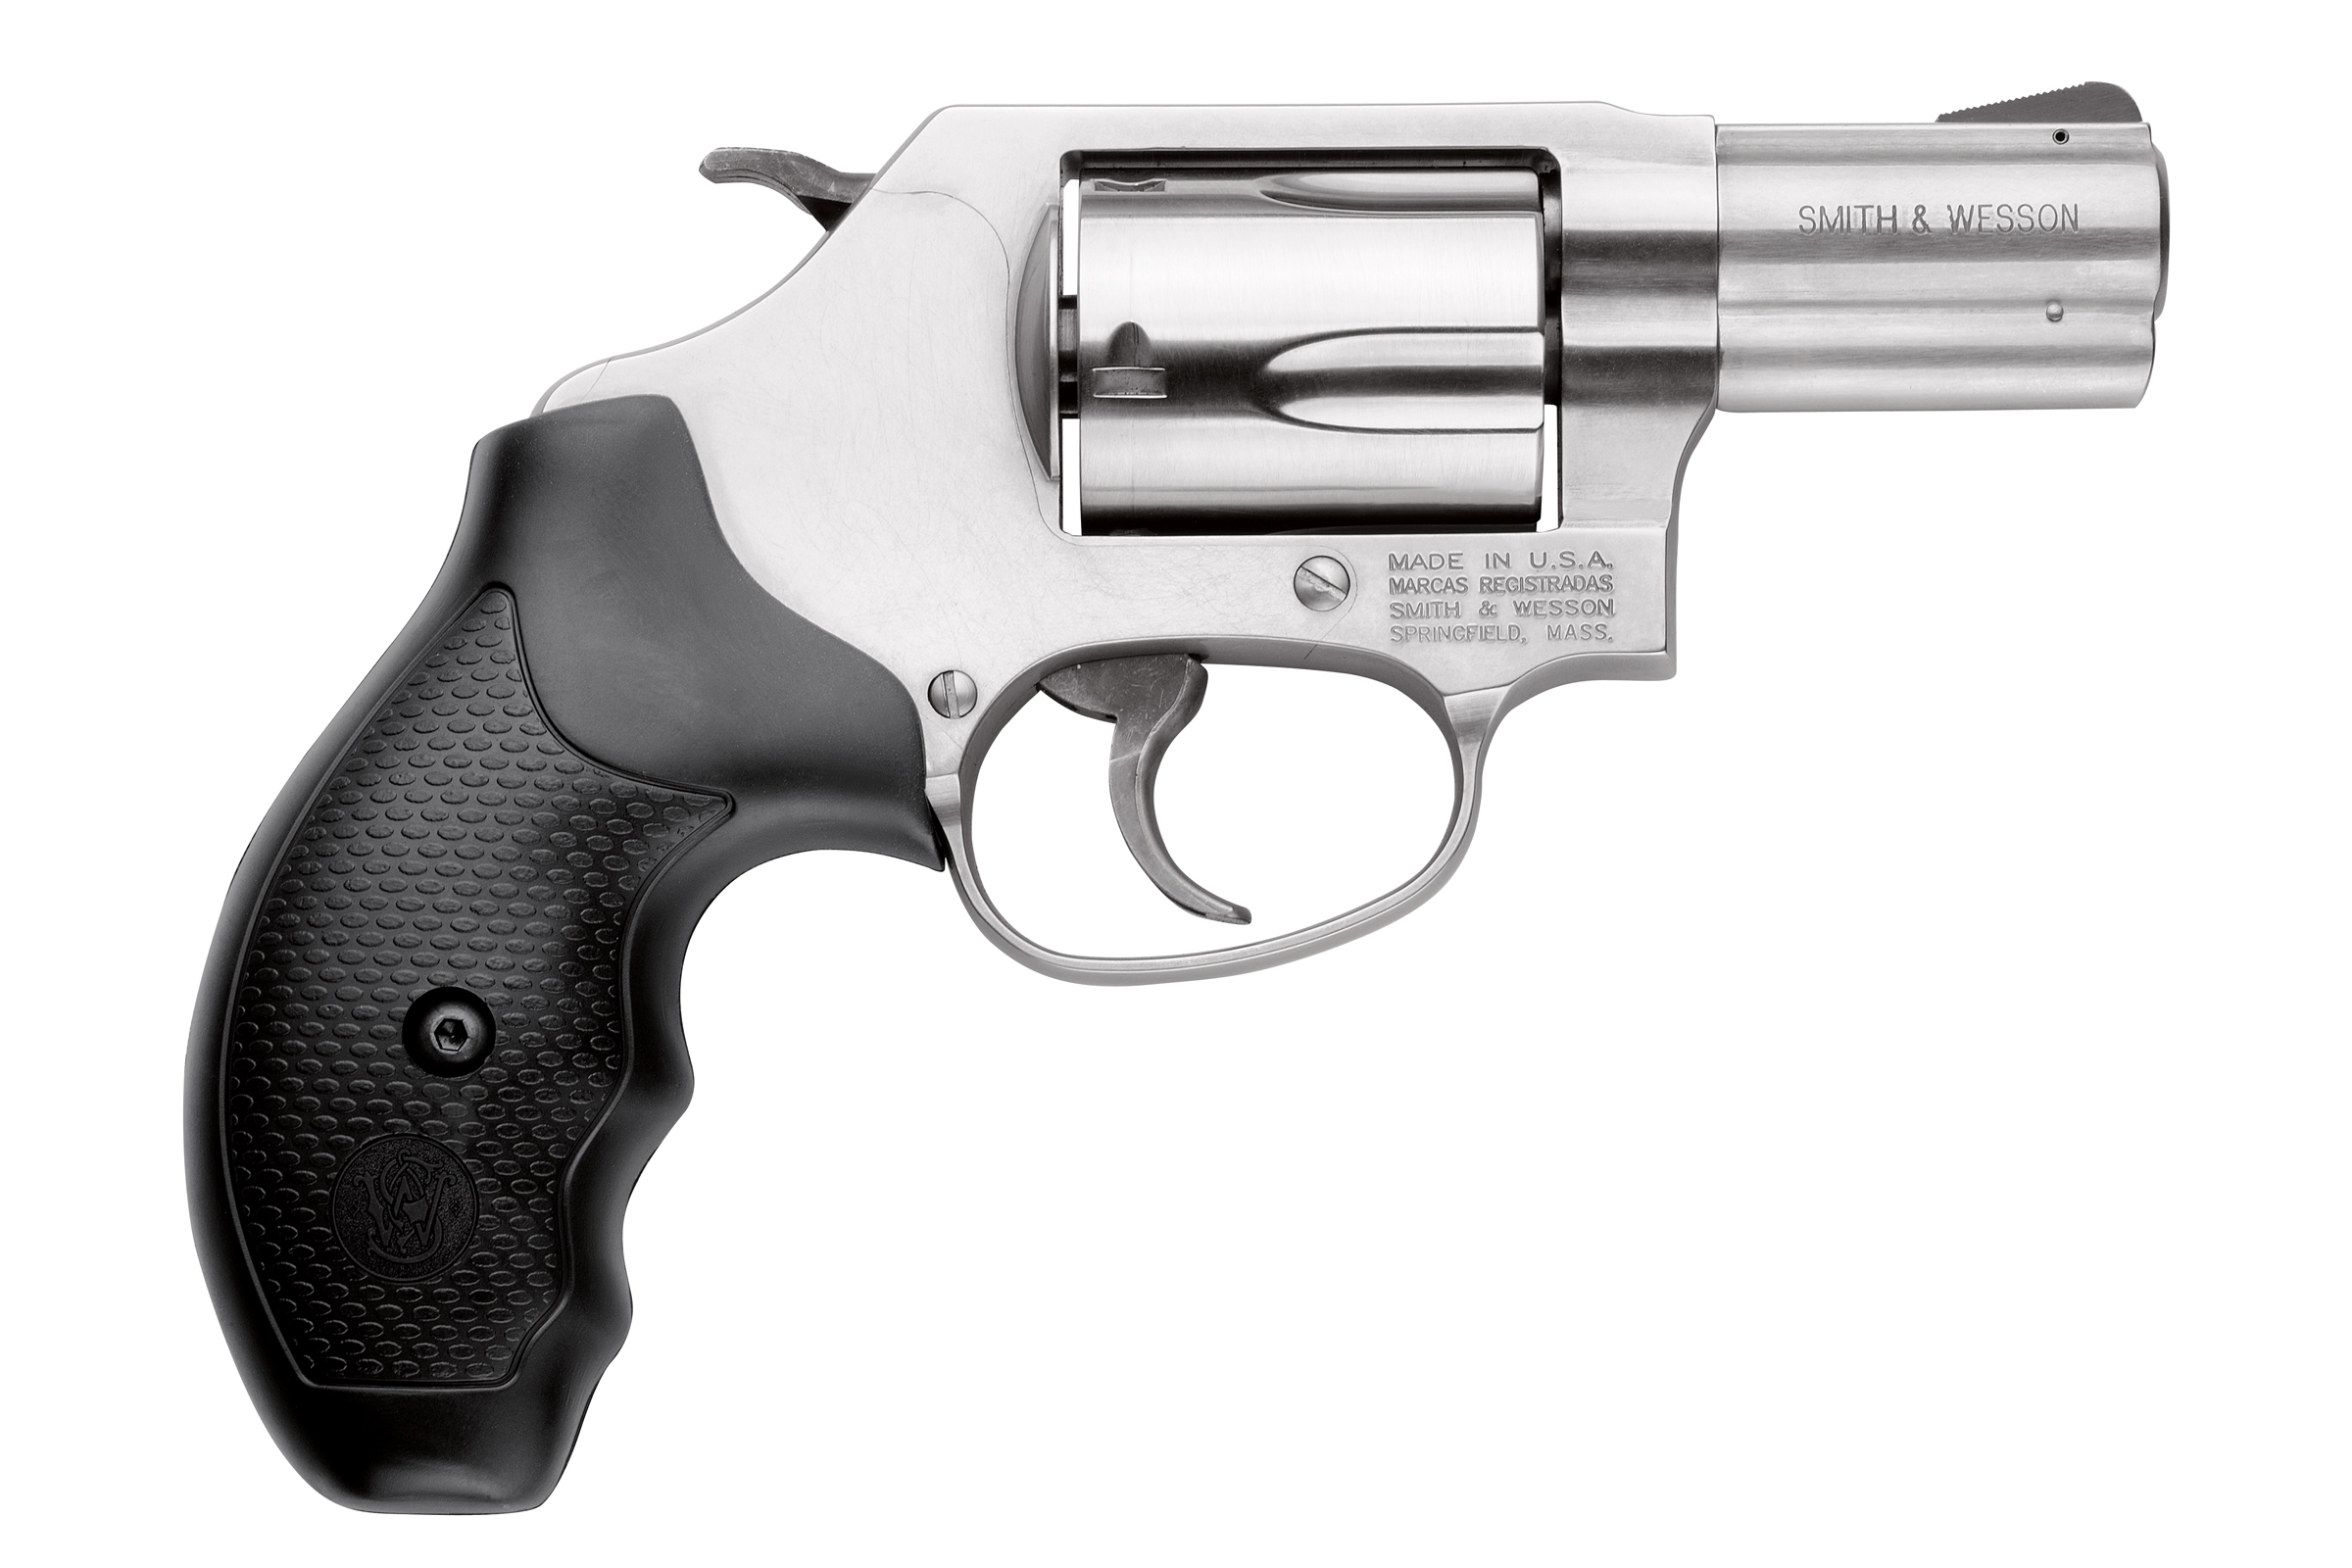 Smith and Wesson 60 357 Magnum | 38 Special